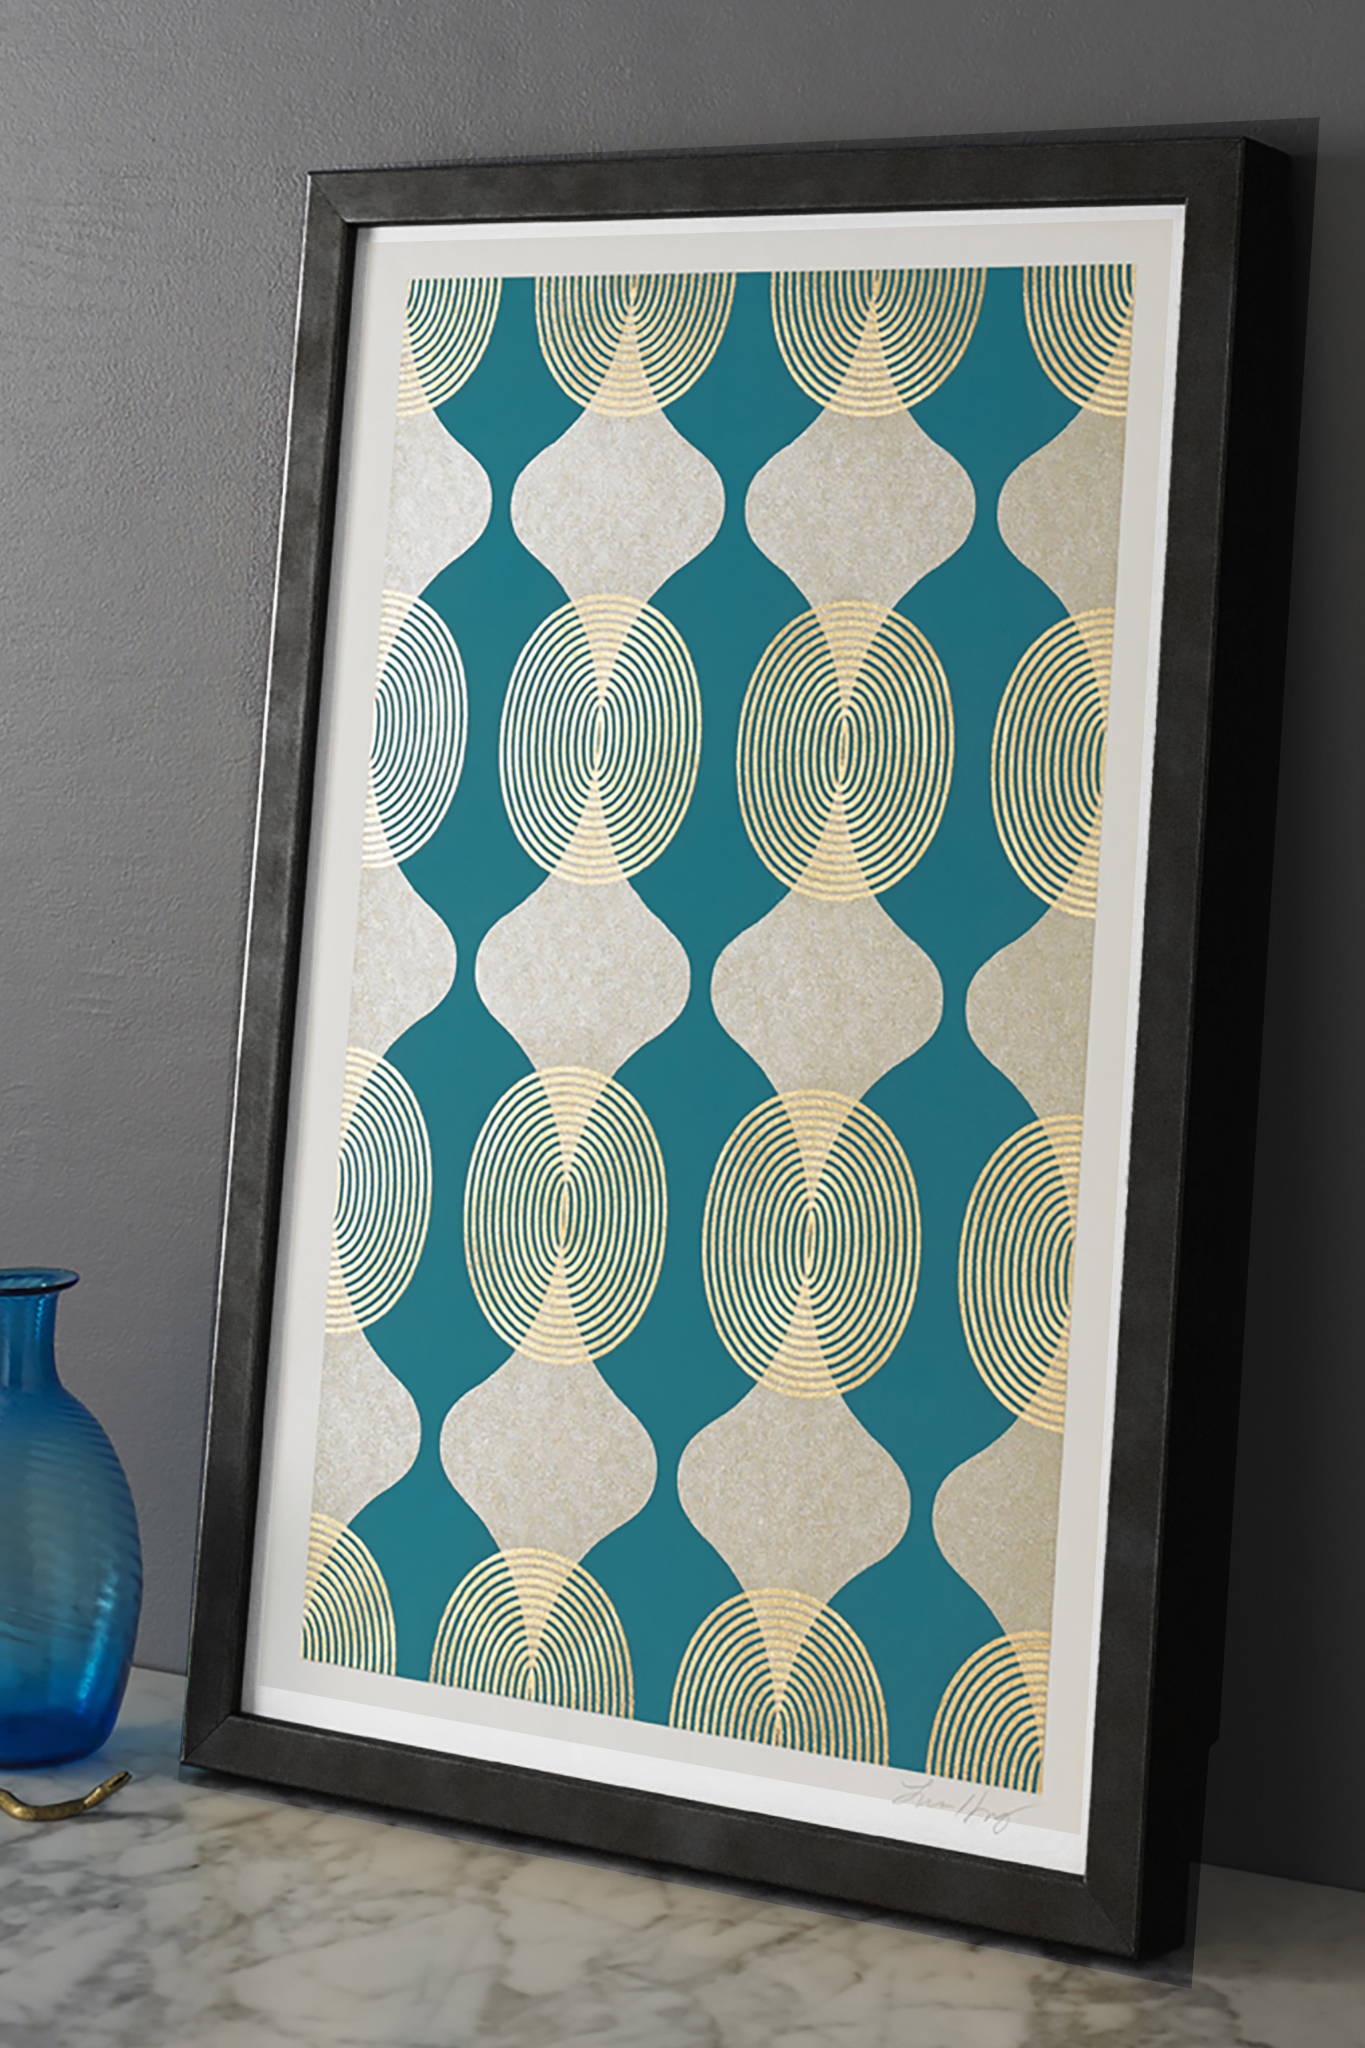 HOURGLASS BEADS TURQUOISE - FRAMED $ 930